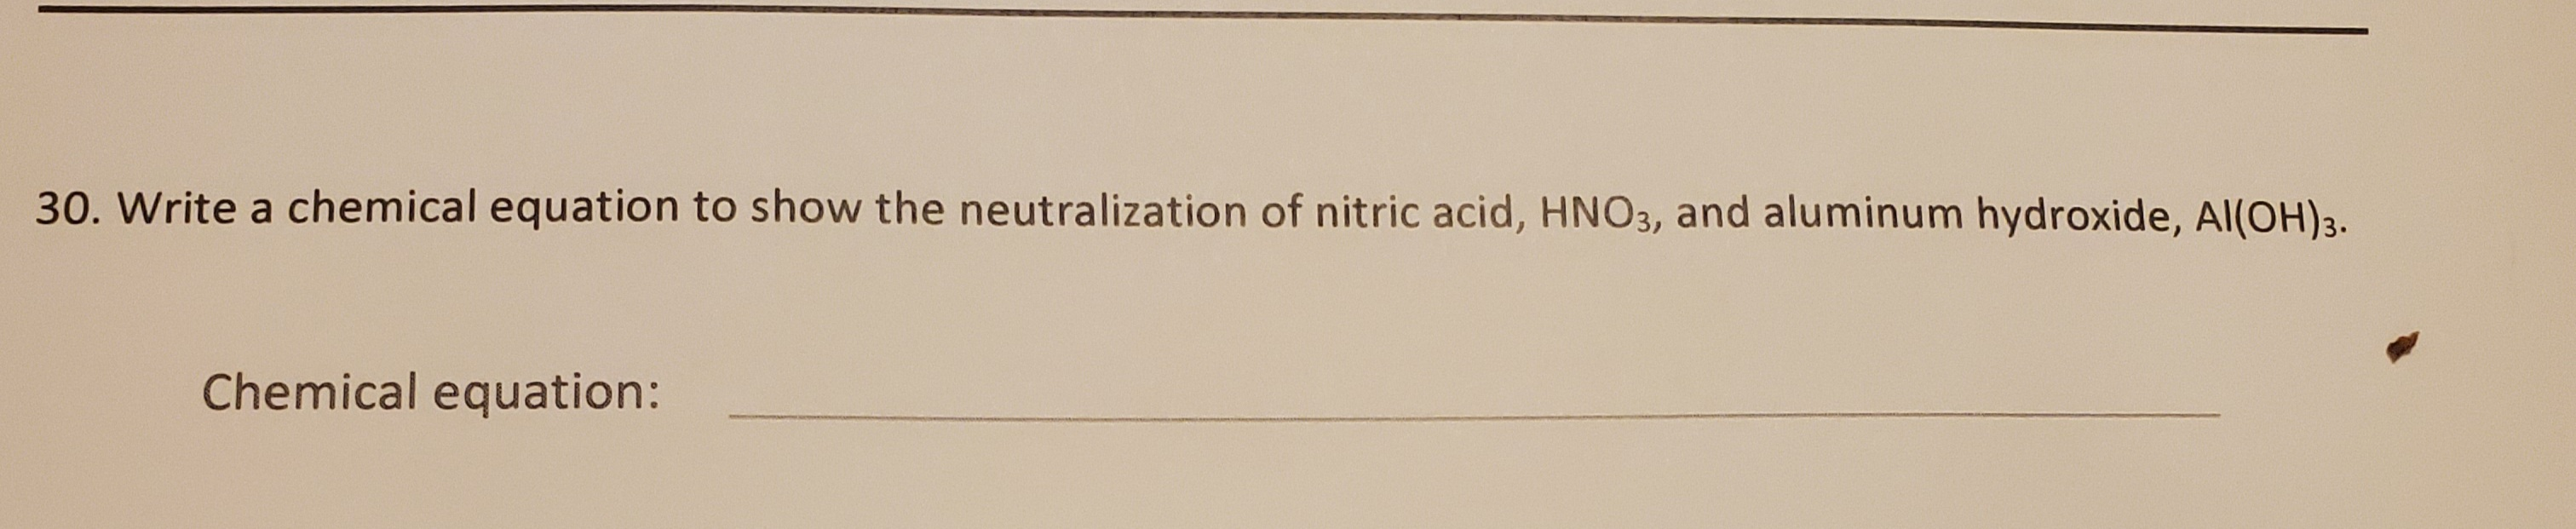 30. Write a chemical equation to show the neutralization of nitric acid, HNO3, and aluminum hydroxide, Al(OH)3. Chemical equation: